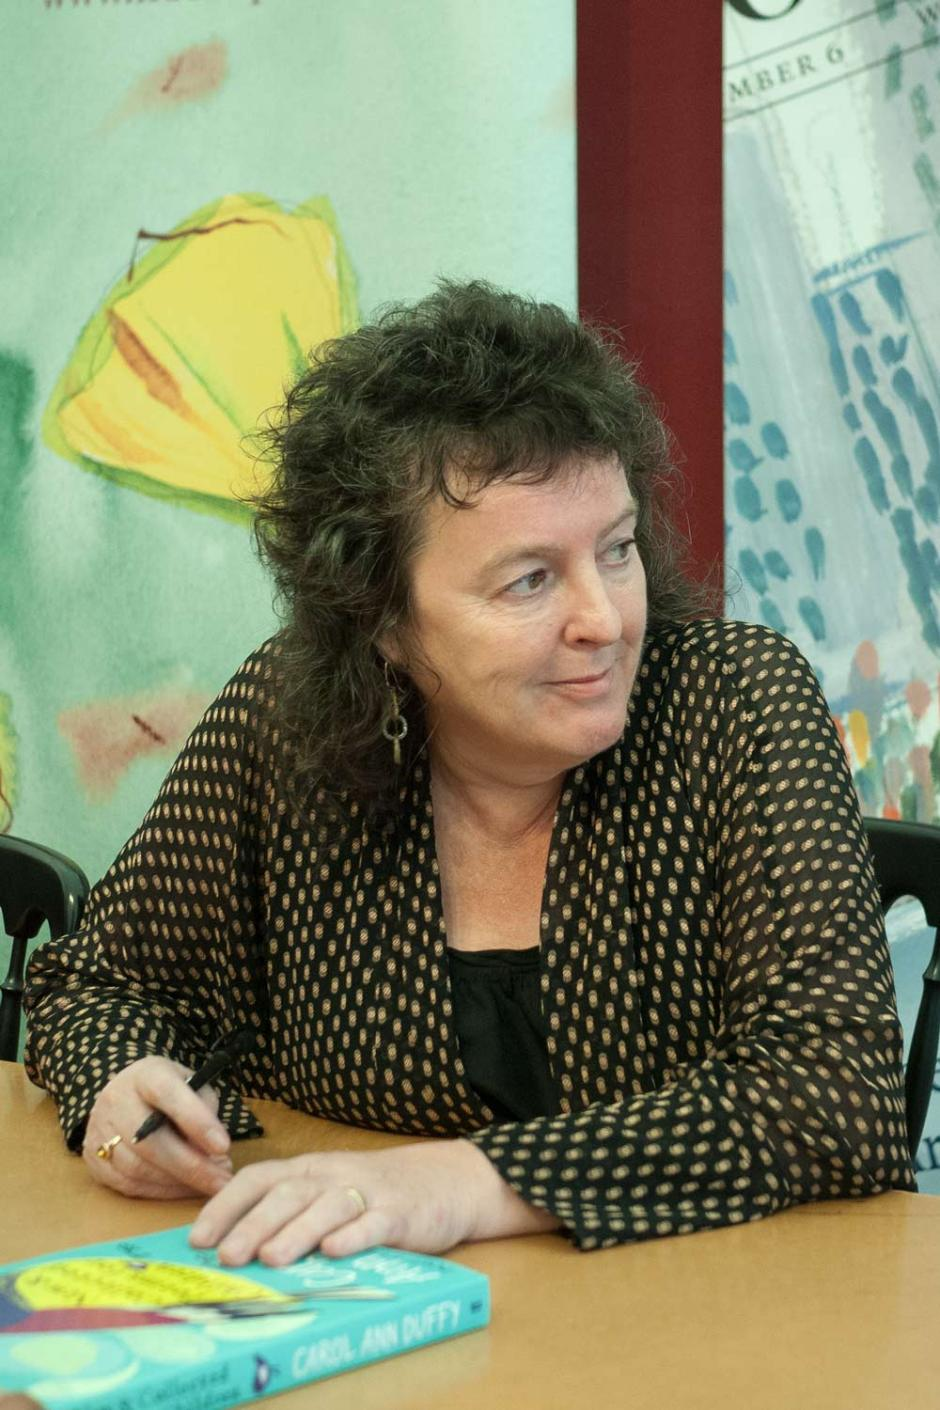 Carol Ann Duffy - The Poet Laureate